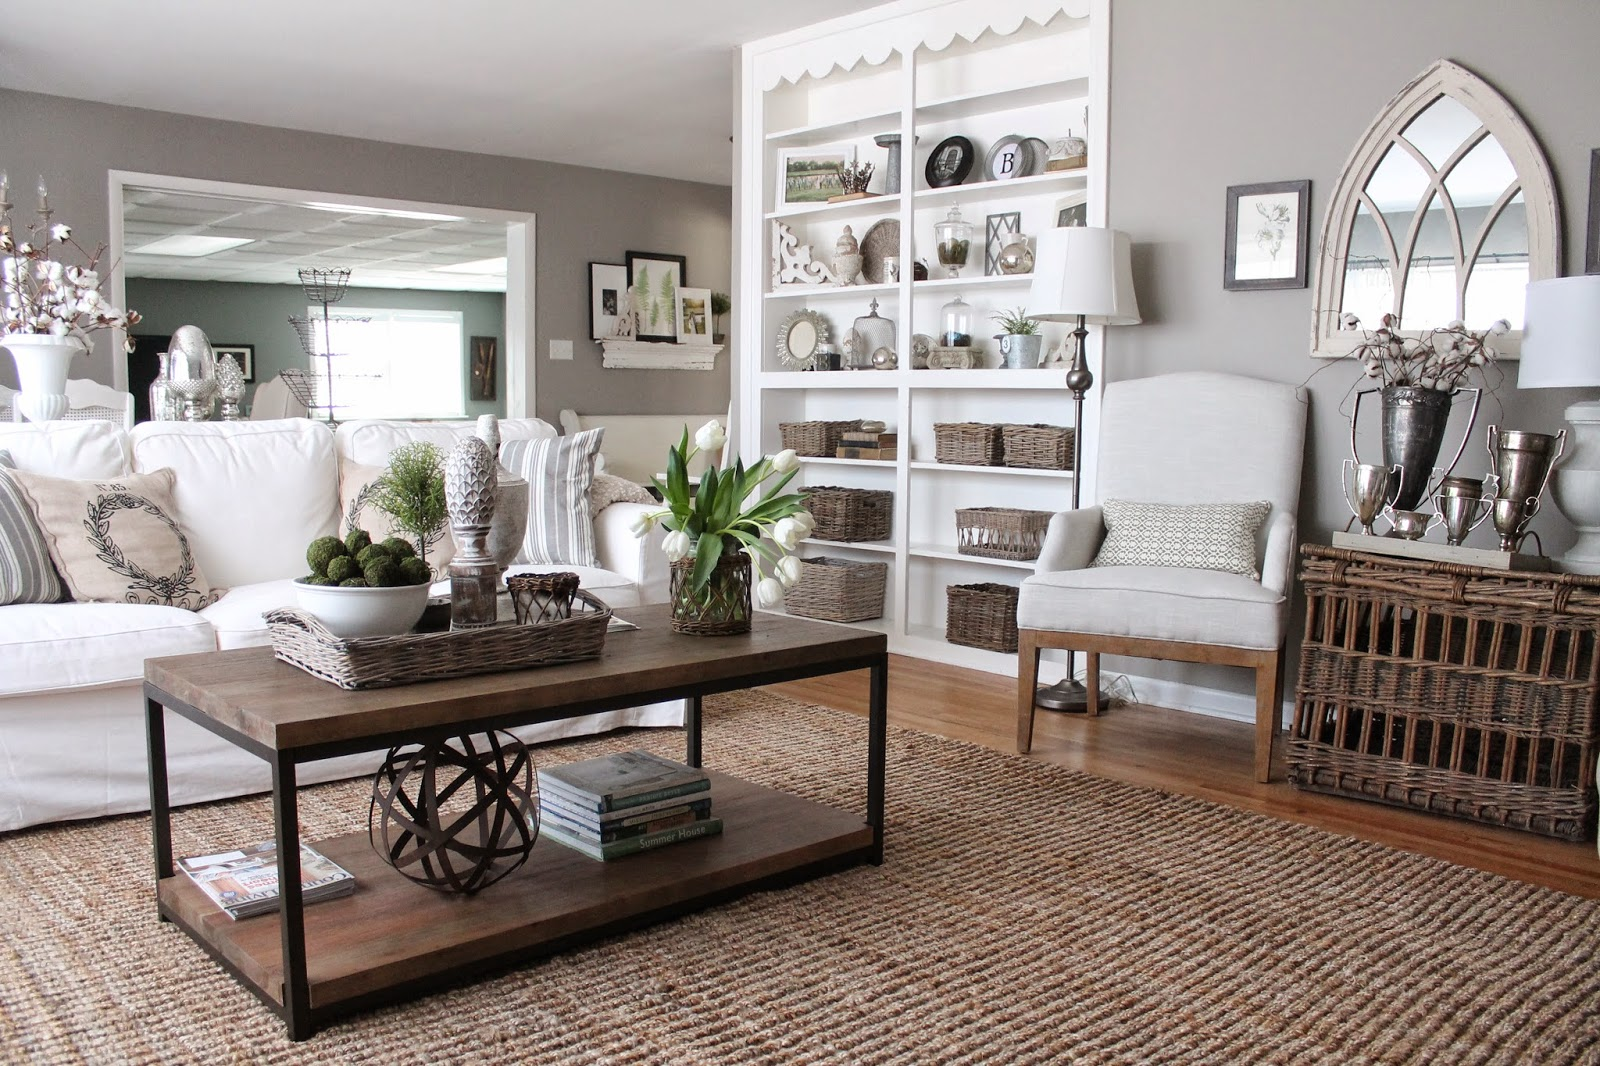 Best Benjamin Moore Gray Colors 12th And White How To Choose Gray Paint Colors